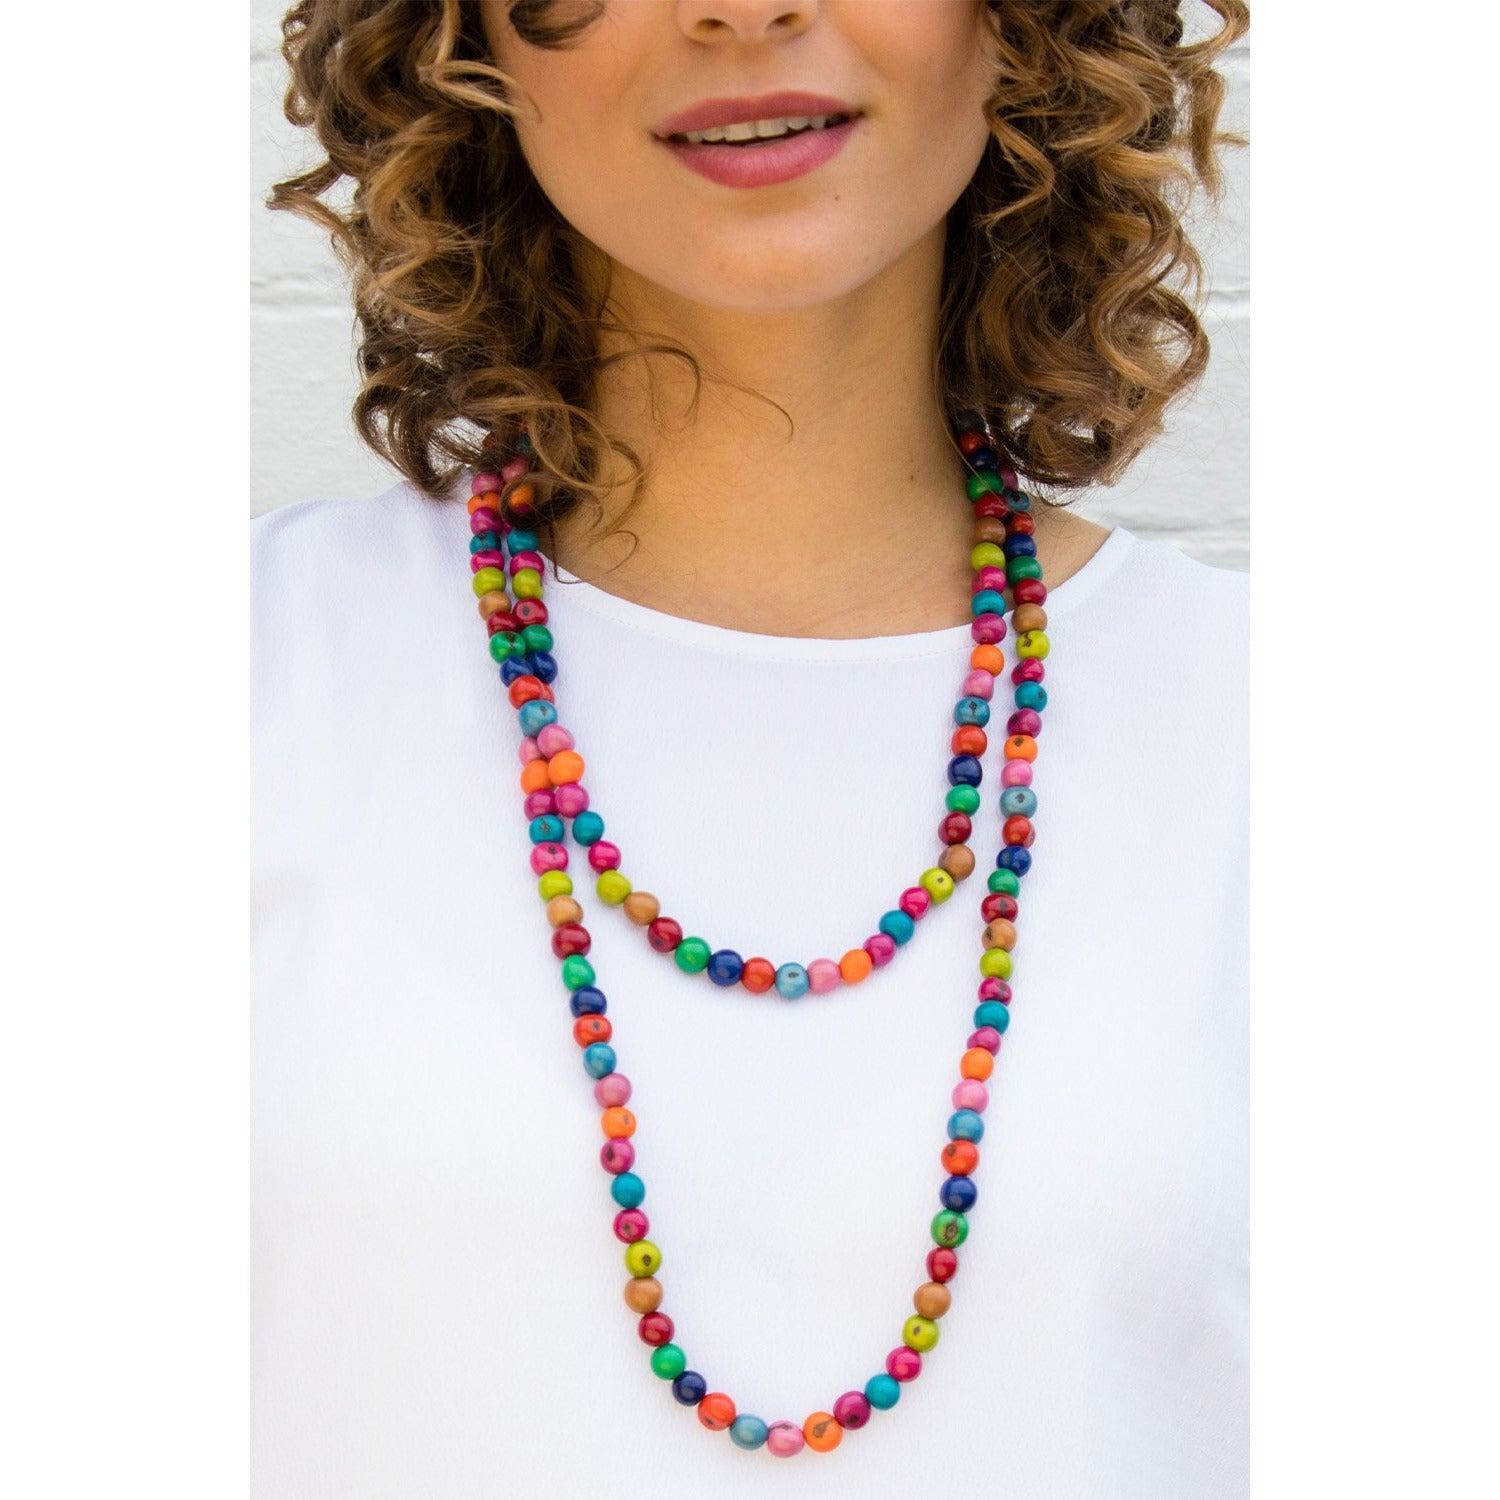 Acai Bead Necklaces by Melko in Multi Pop